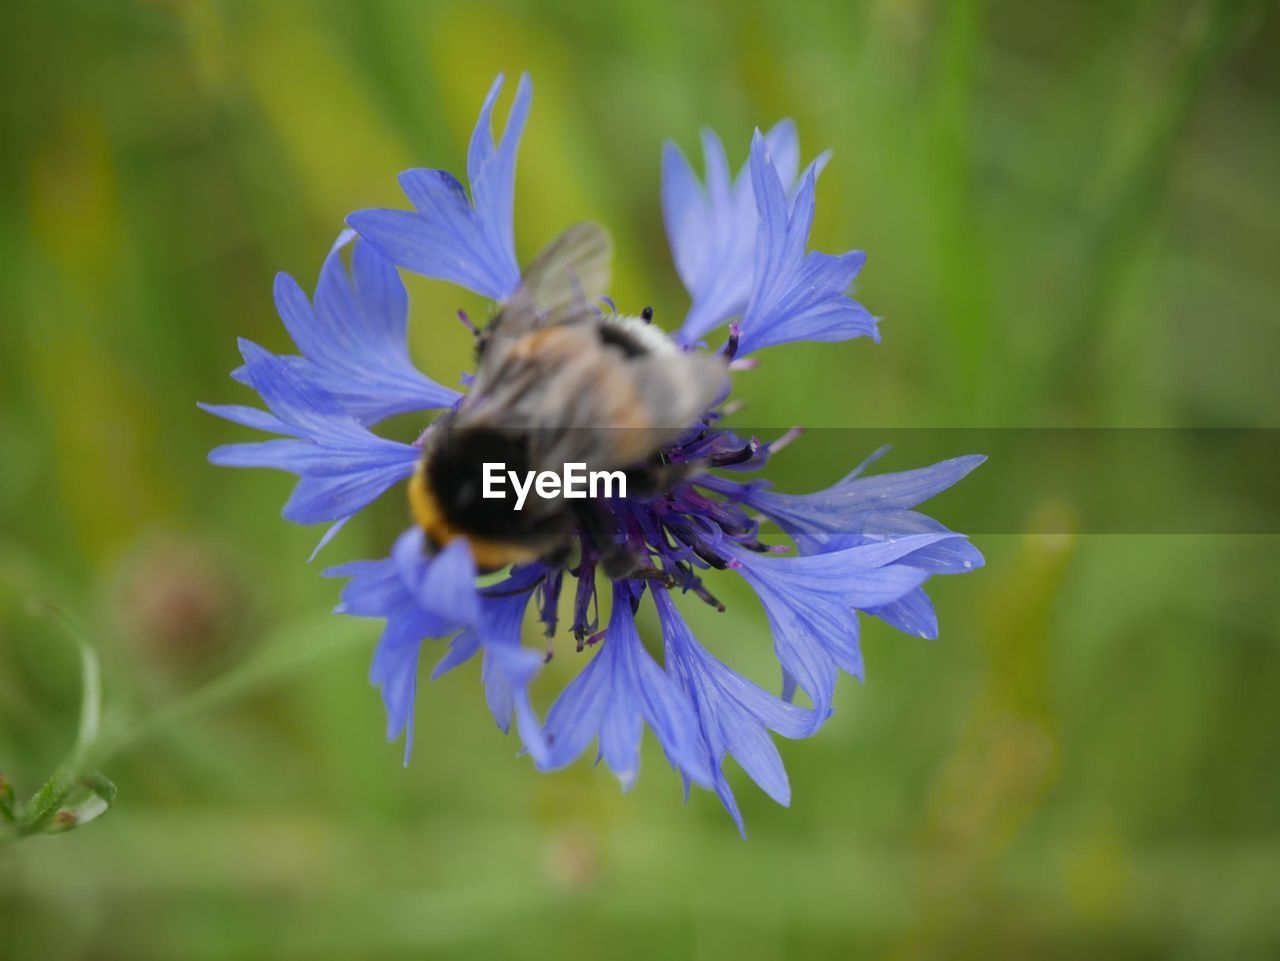 flowering plant, flower, animal themes, fragility, invertebrate, insect, animal, petal, vulnerability, one animal, flower head, animal wildlife, beauty in nature, plant, growth, animals in the wild, freshness, bee, close-up, pollination, purple, no people, pollen, bumblebee